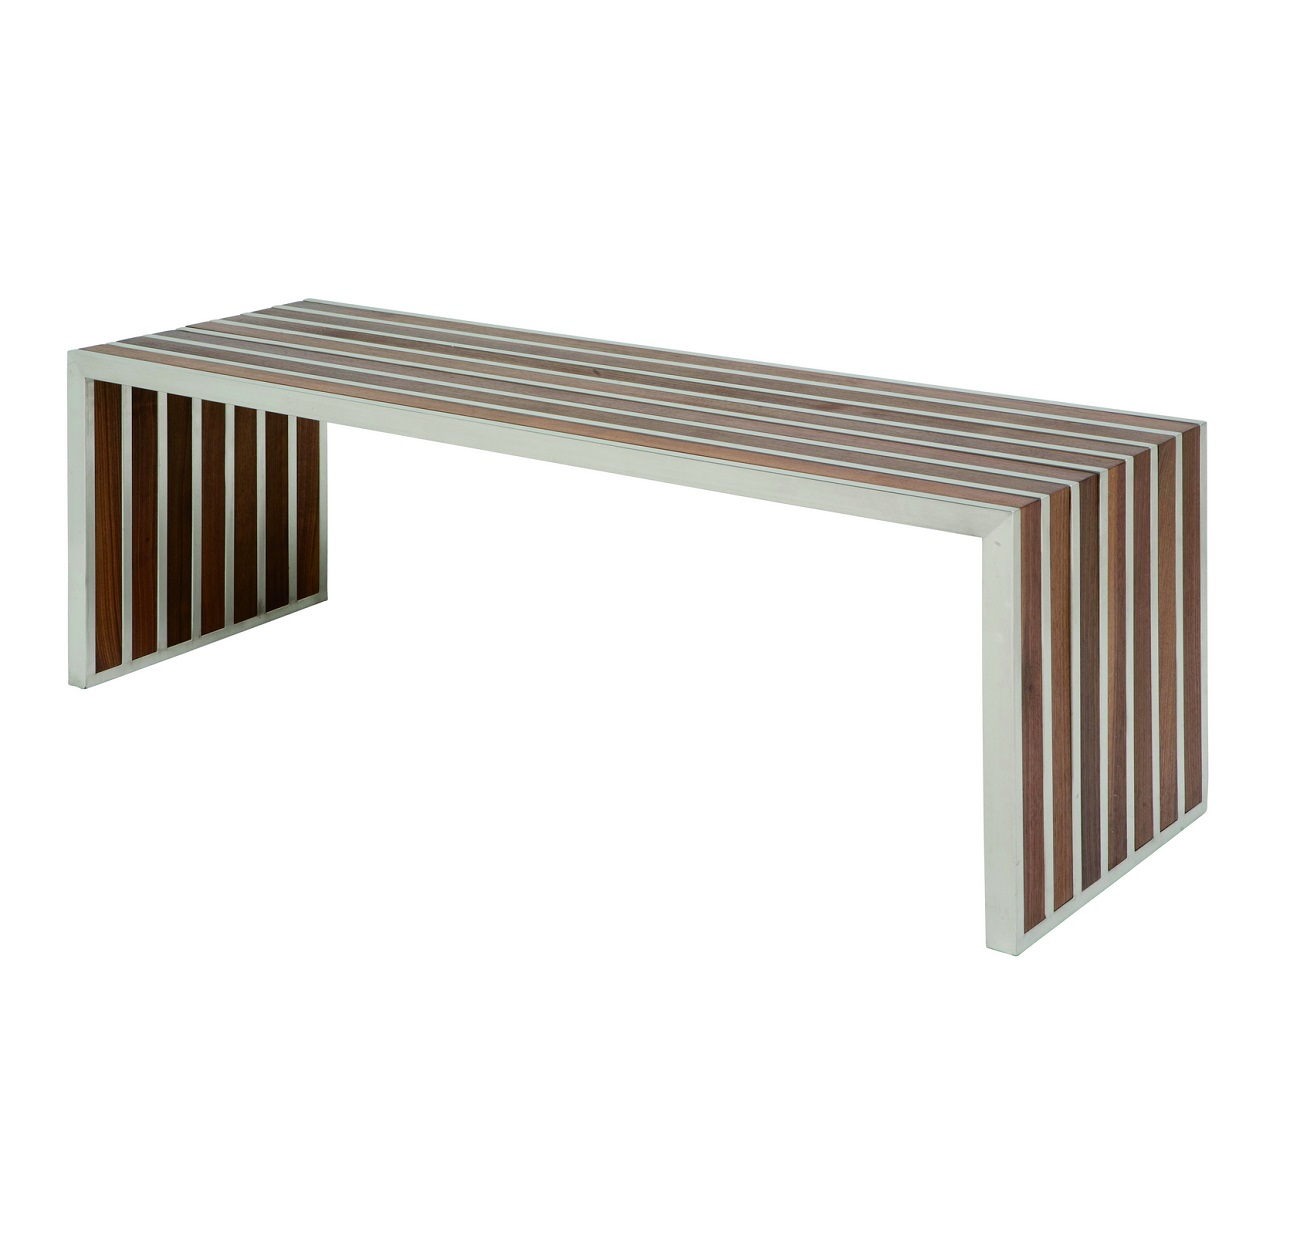 Nuevo American Amici Occasional Steel Bench for Sale Brooklyn, New York– Furniture by ABD